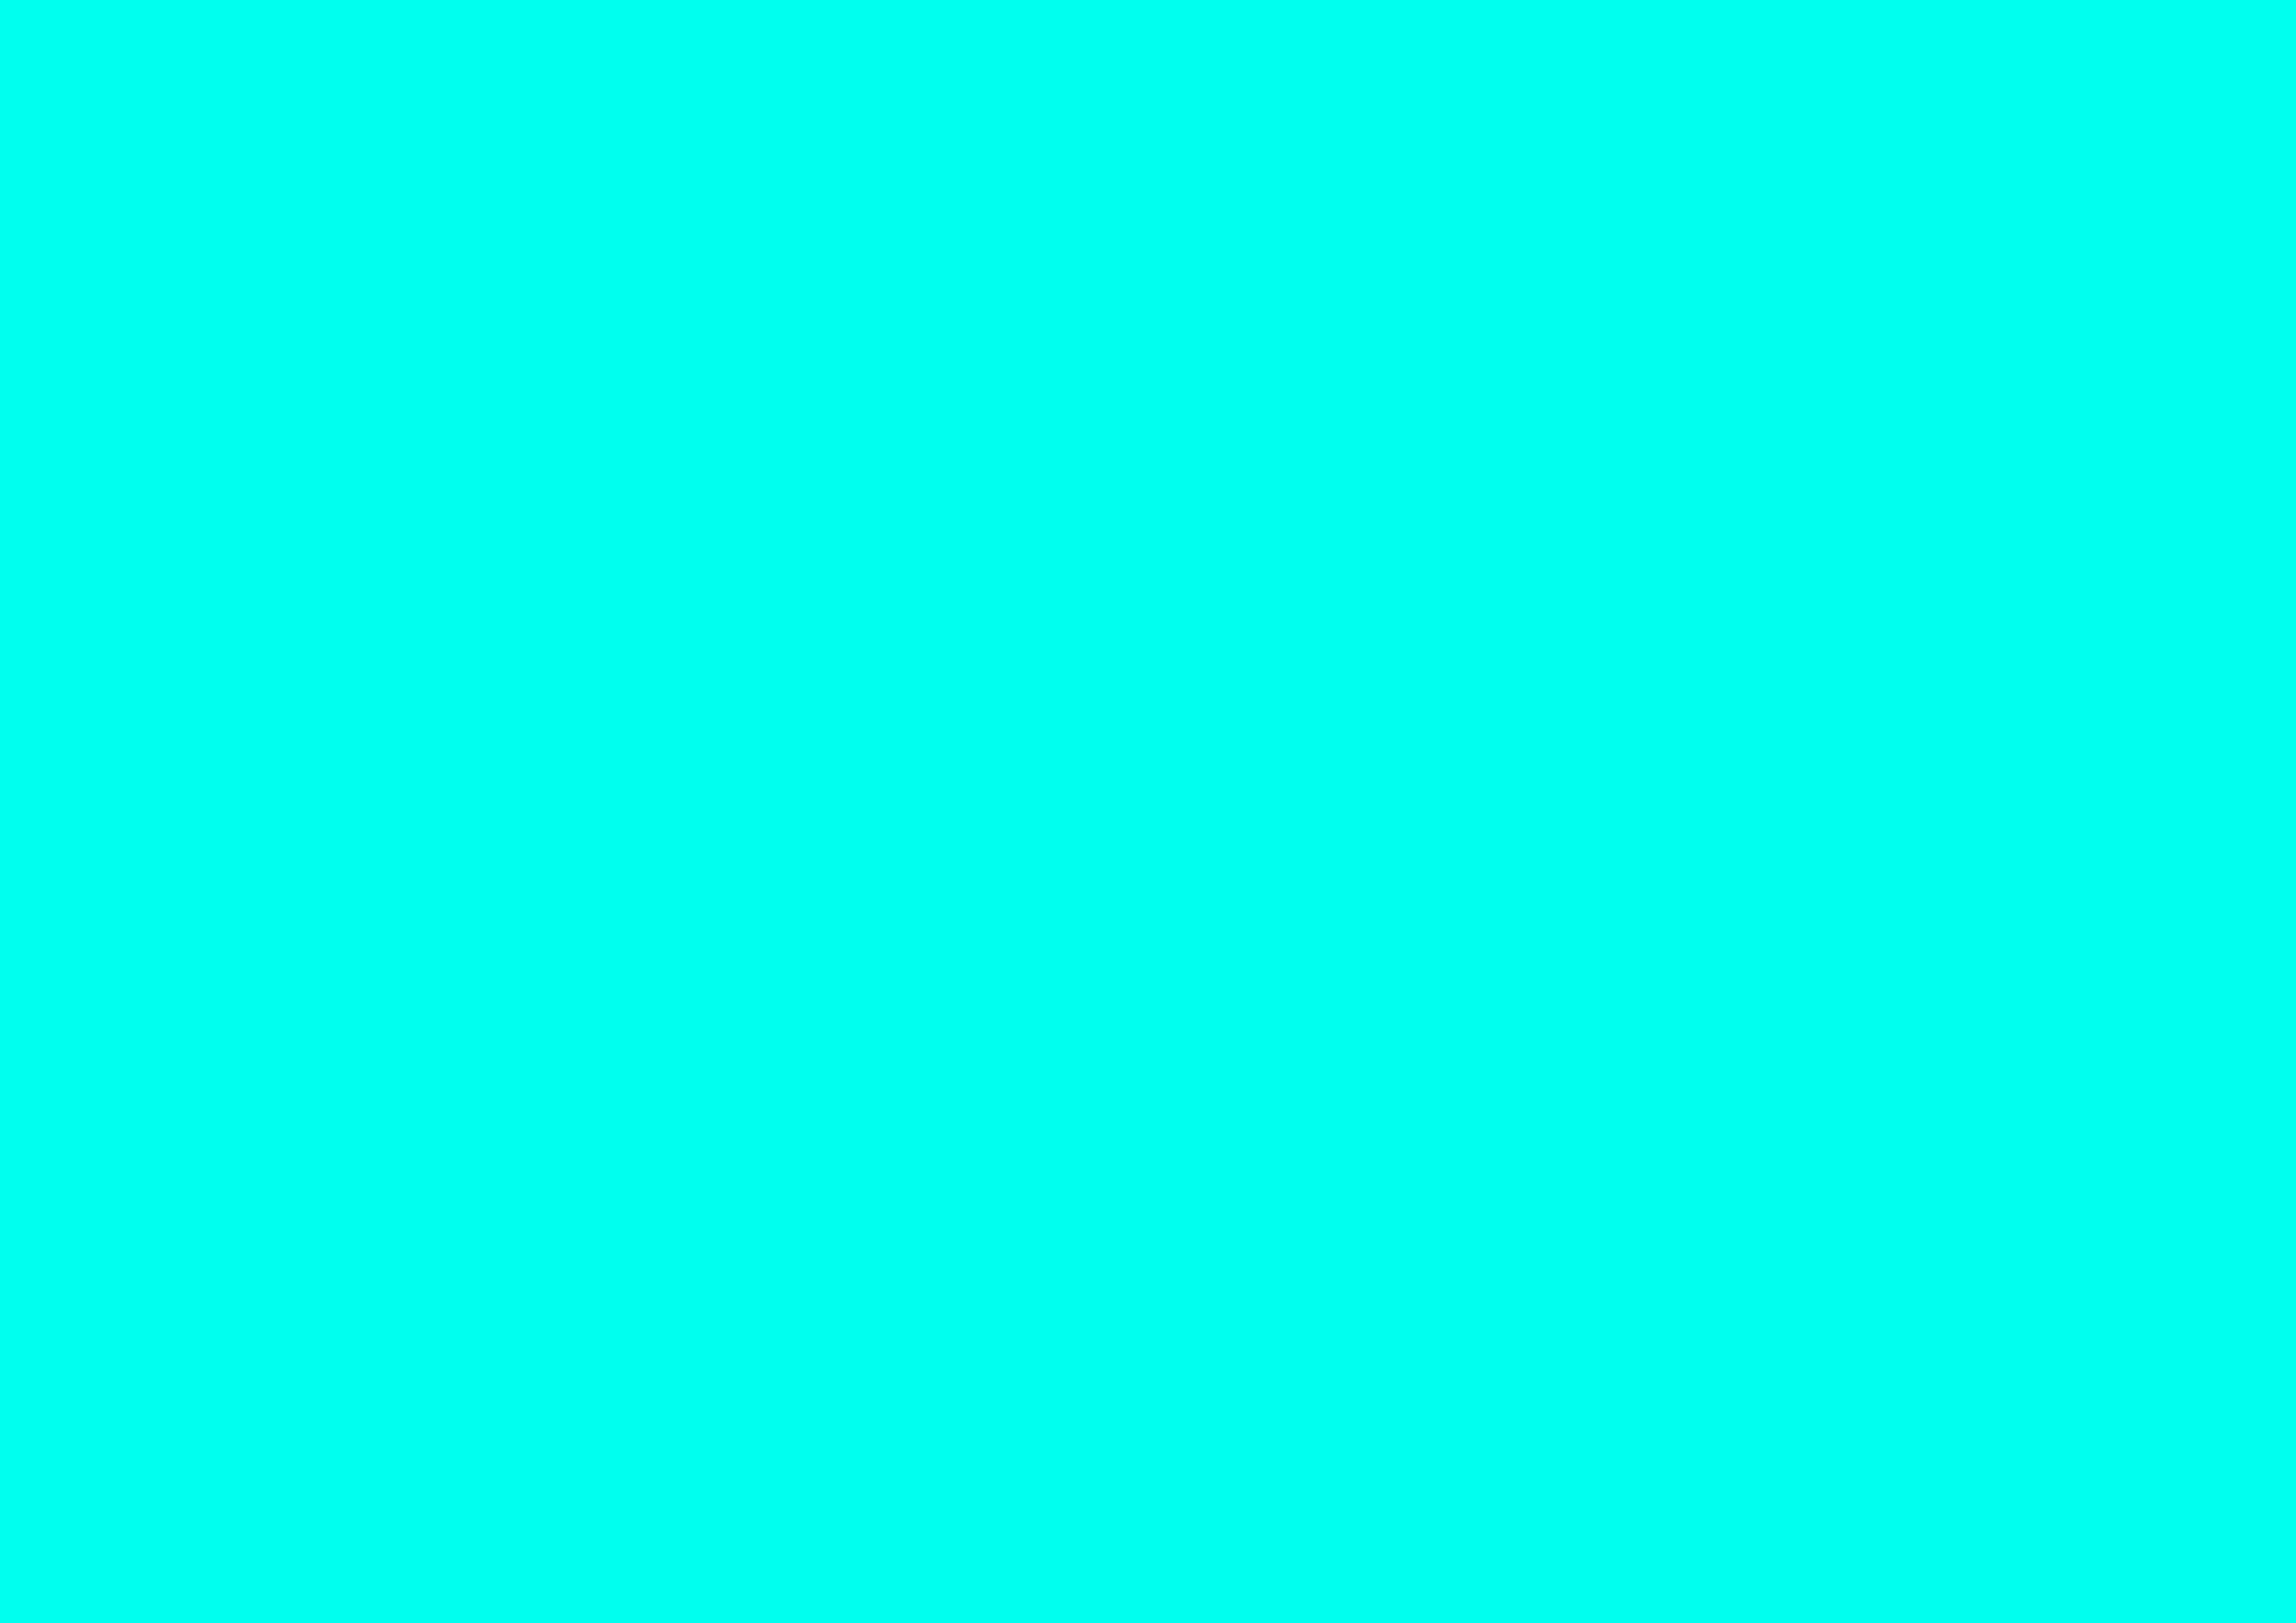 3508x2480 Turquoise Blue Solid Color Background